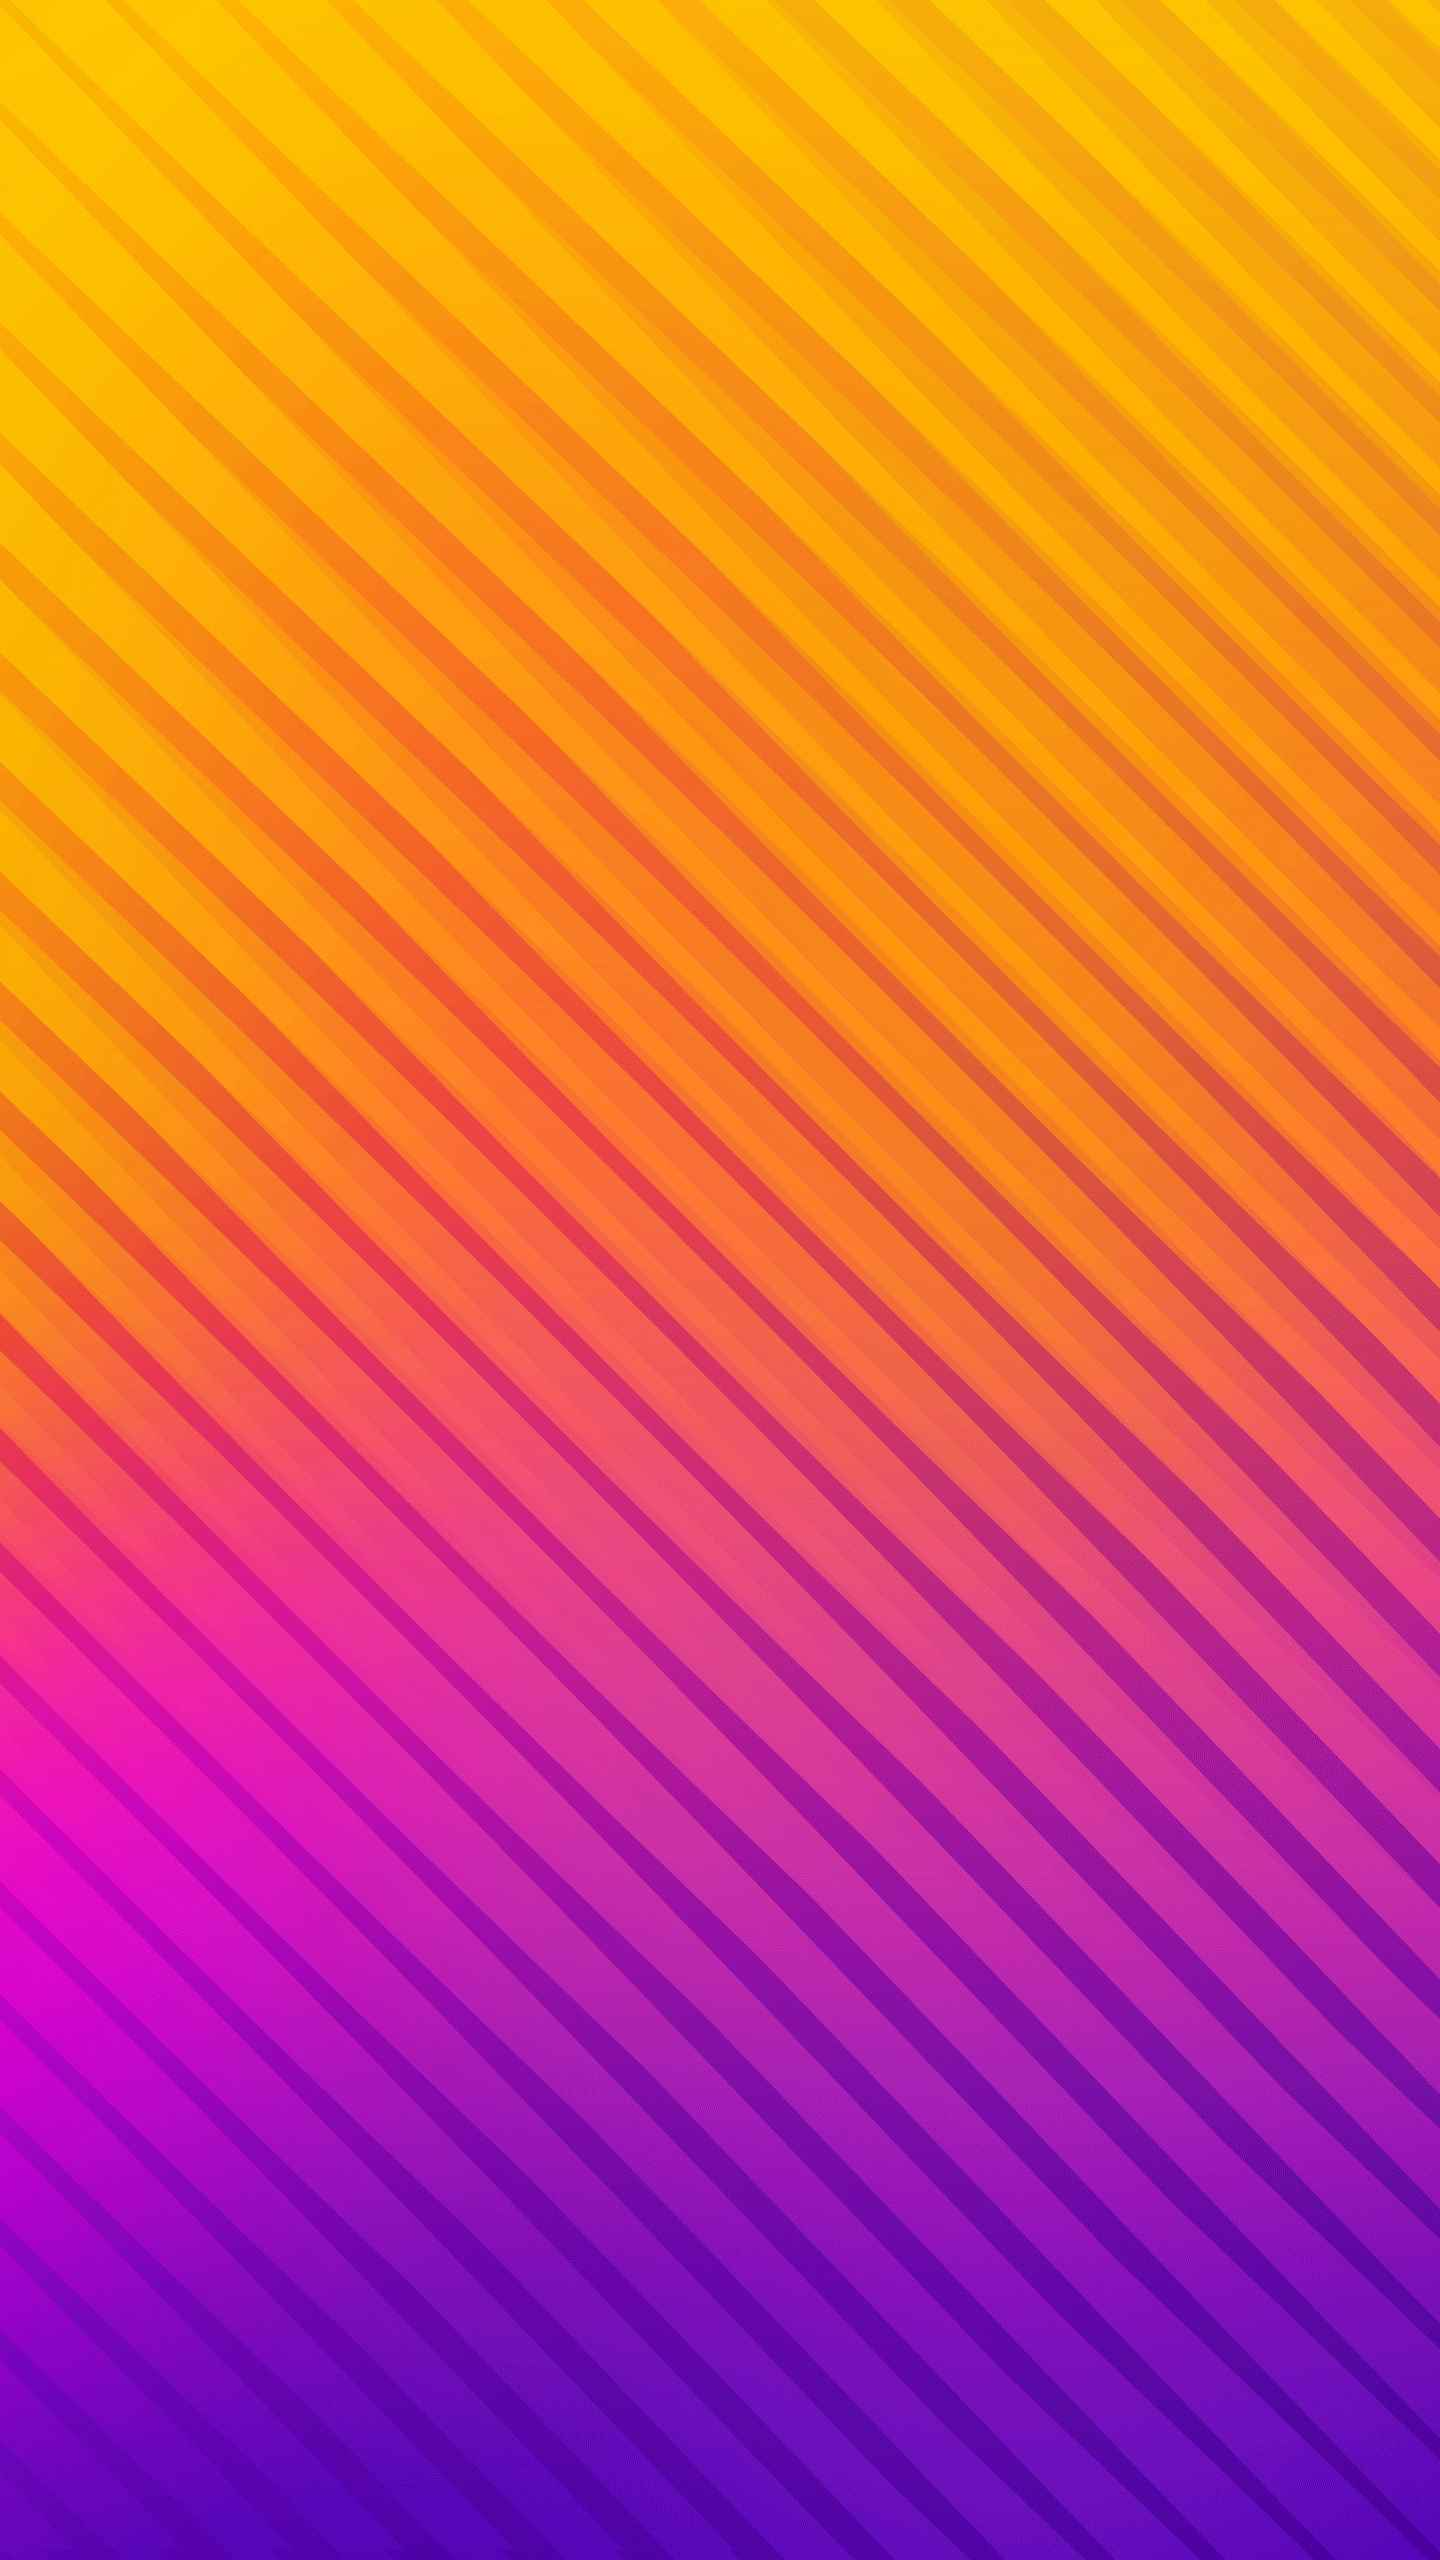 Abstract Gradient iPhone Wallpaper